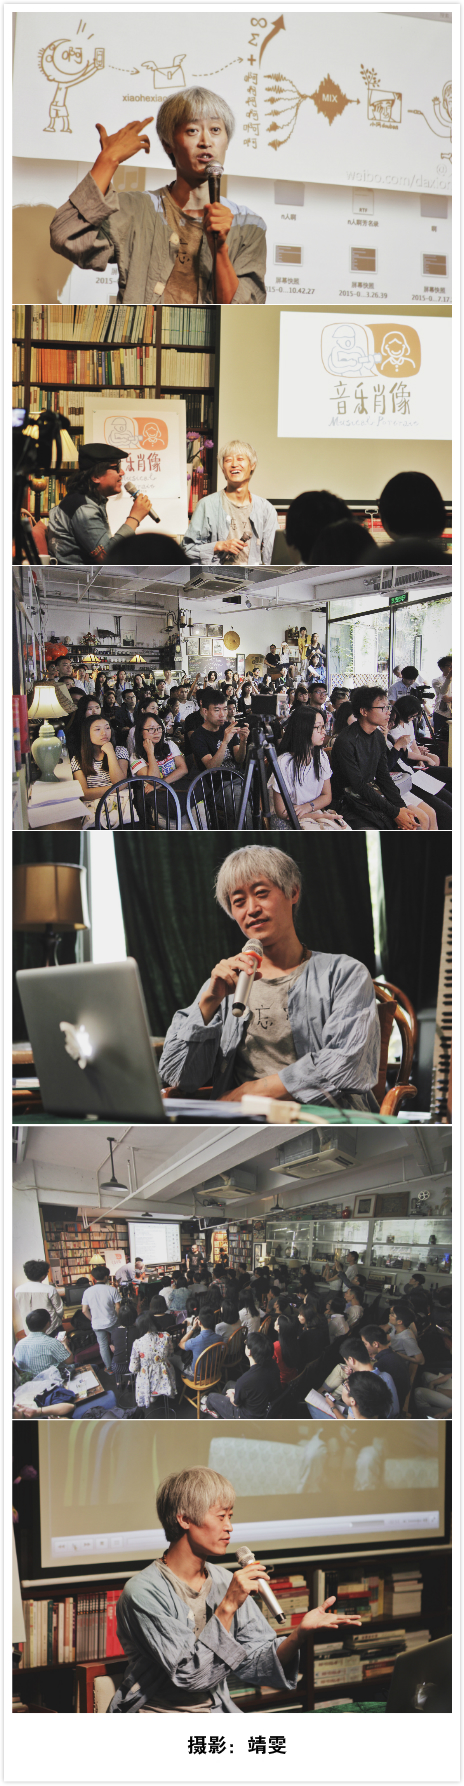 音乐肖像分享会——每个人都可以有一首自己的歌 Sharing Session of Musical Portrait — Everyone Can Have a Song of Their Own